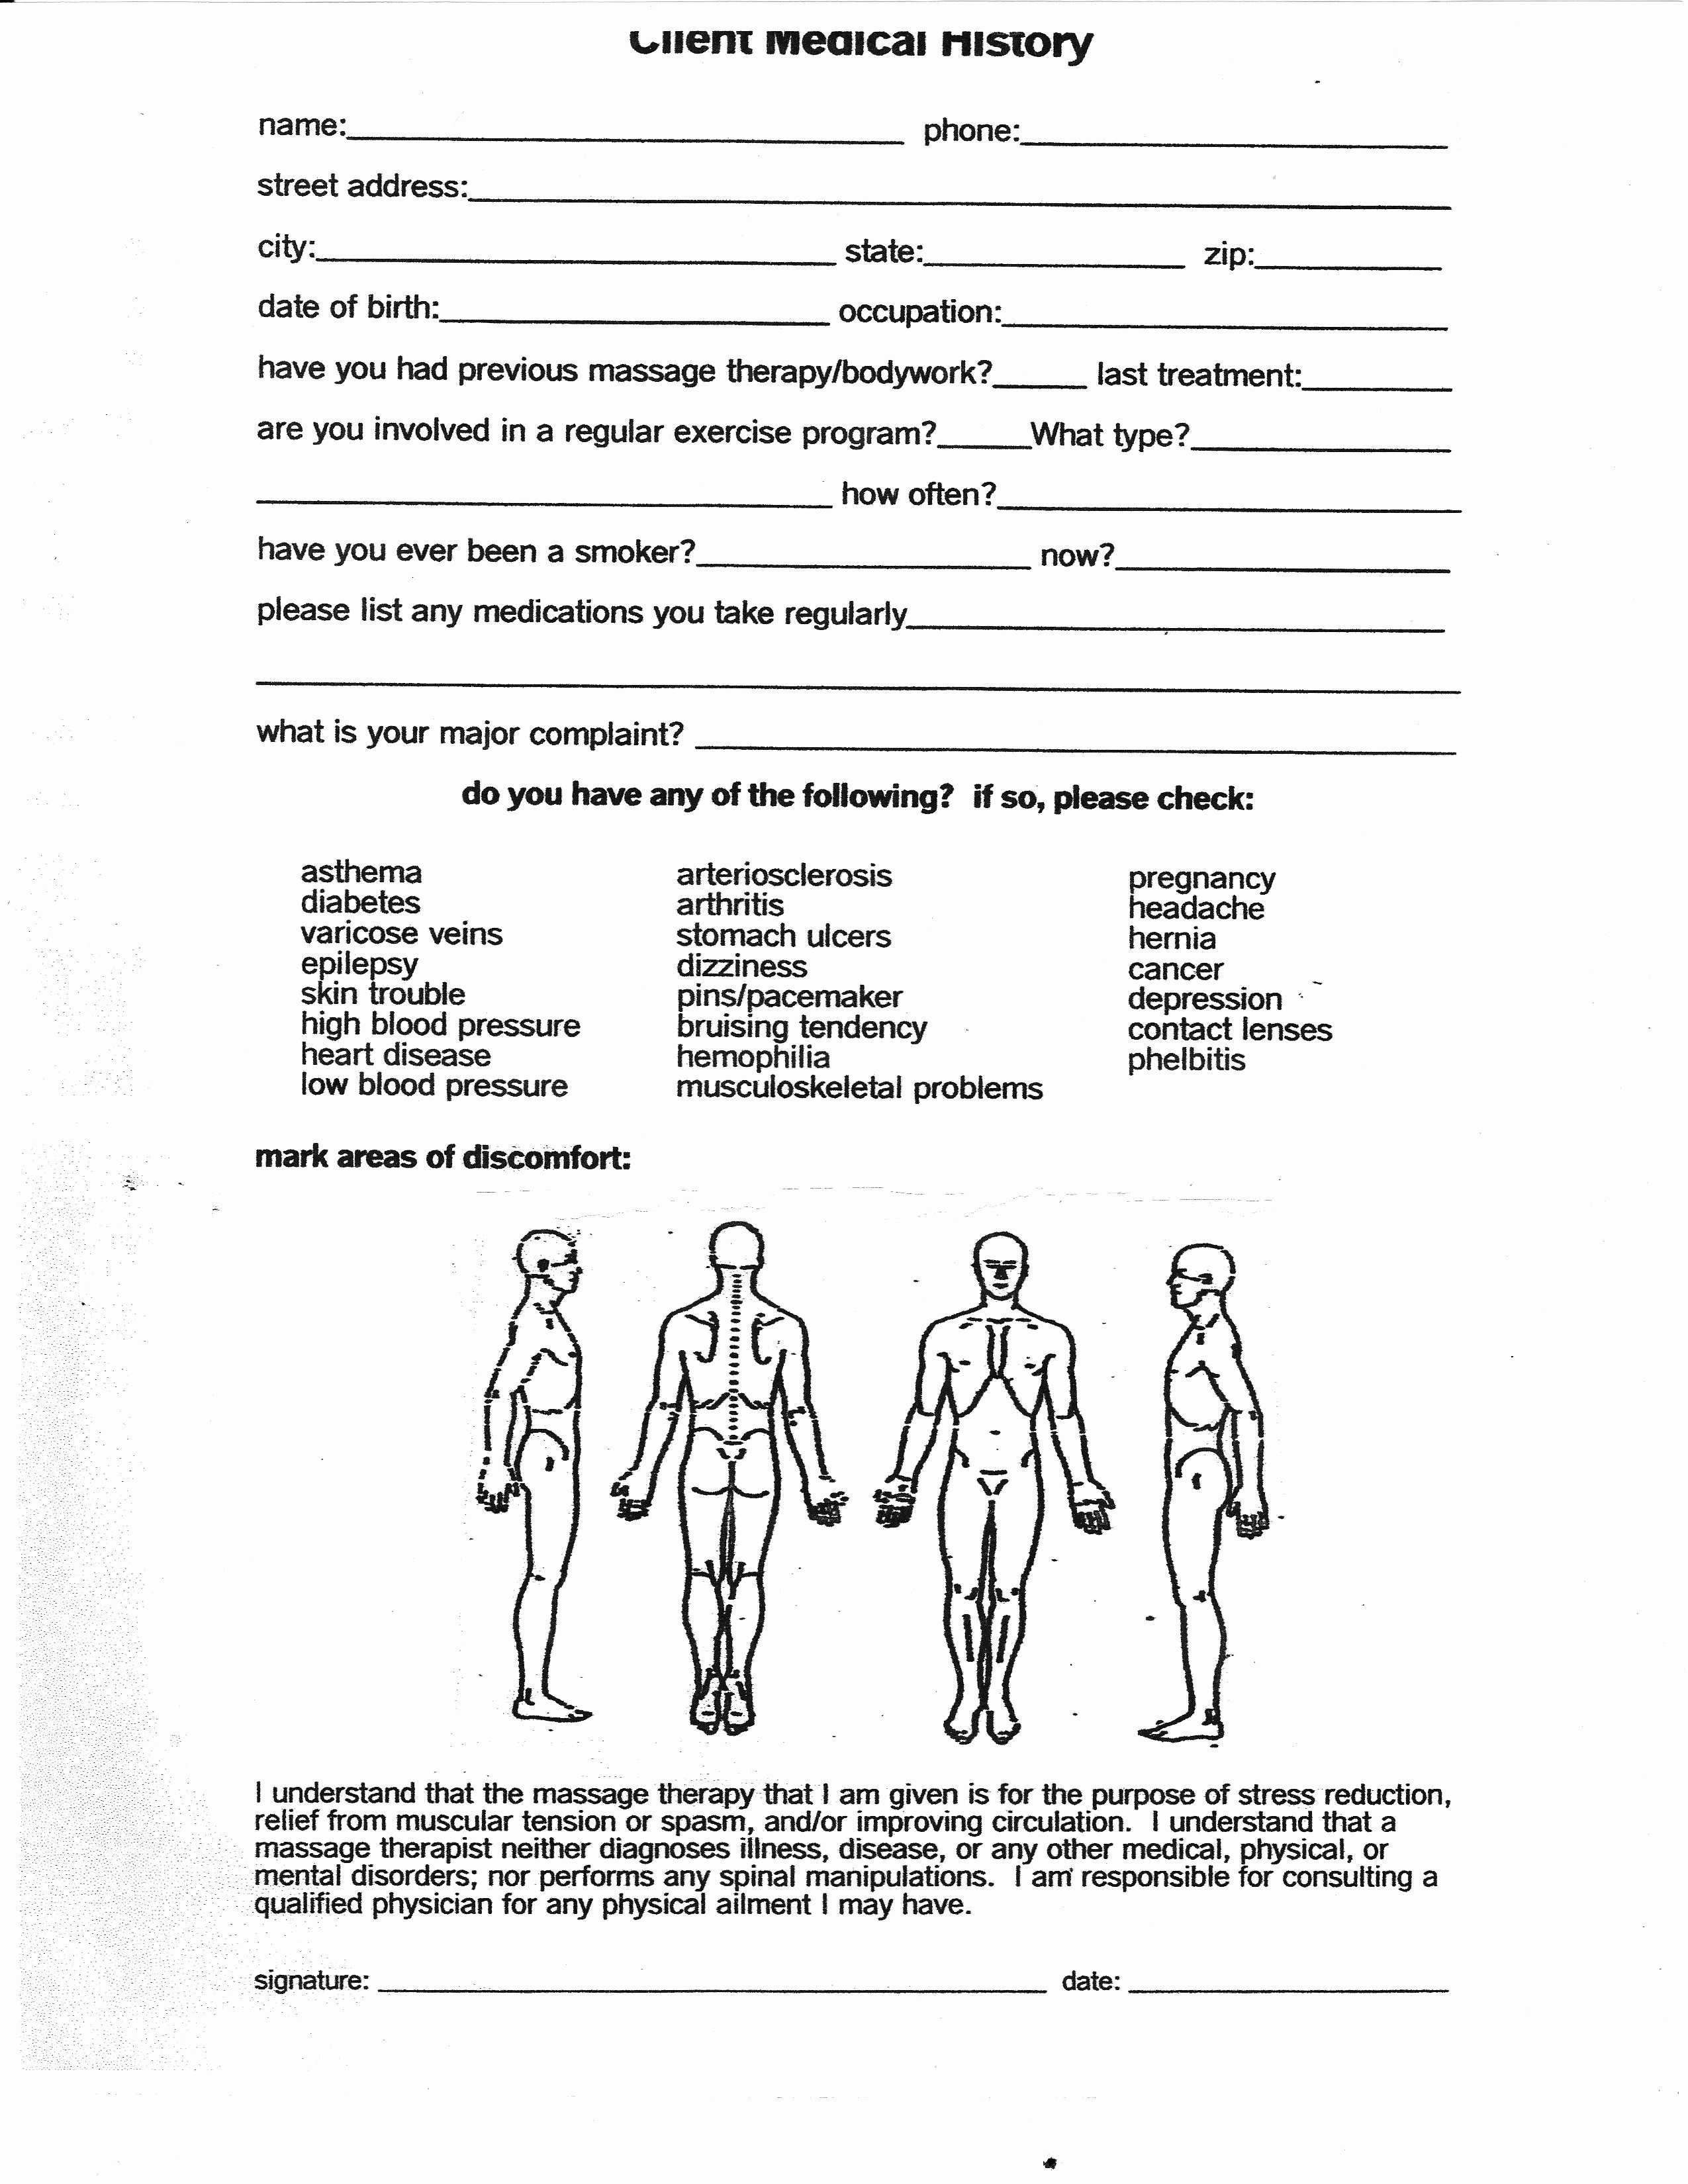 Intake form for Massage therapy